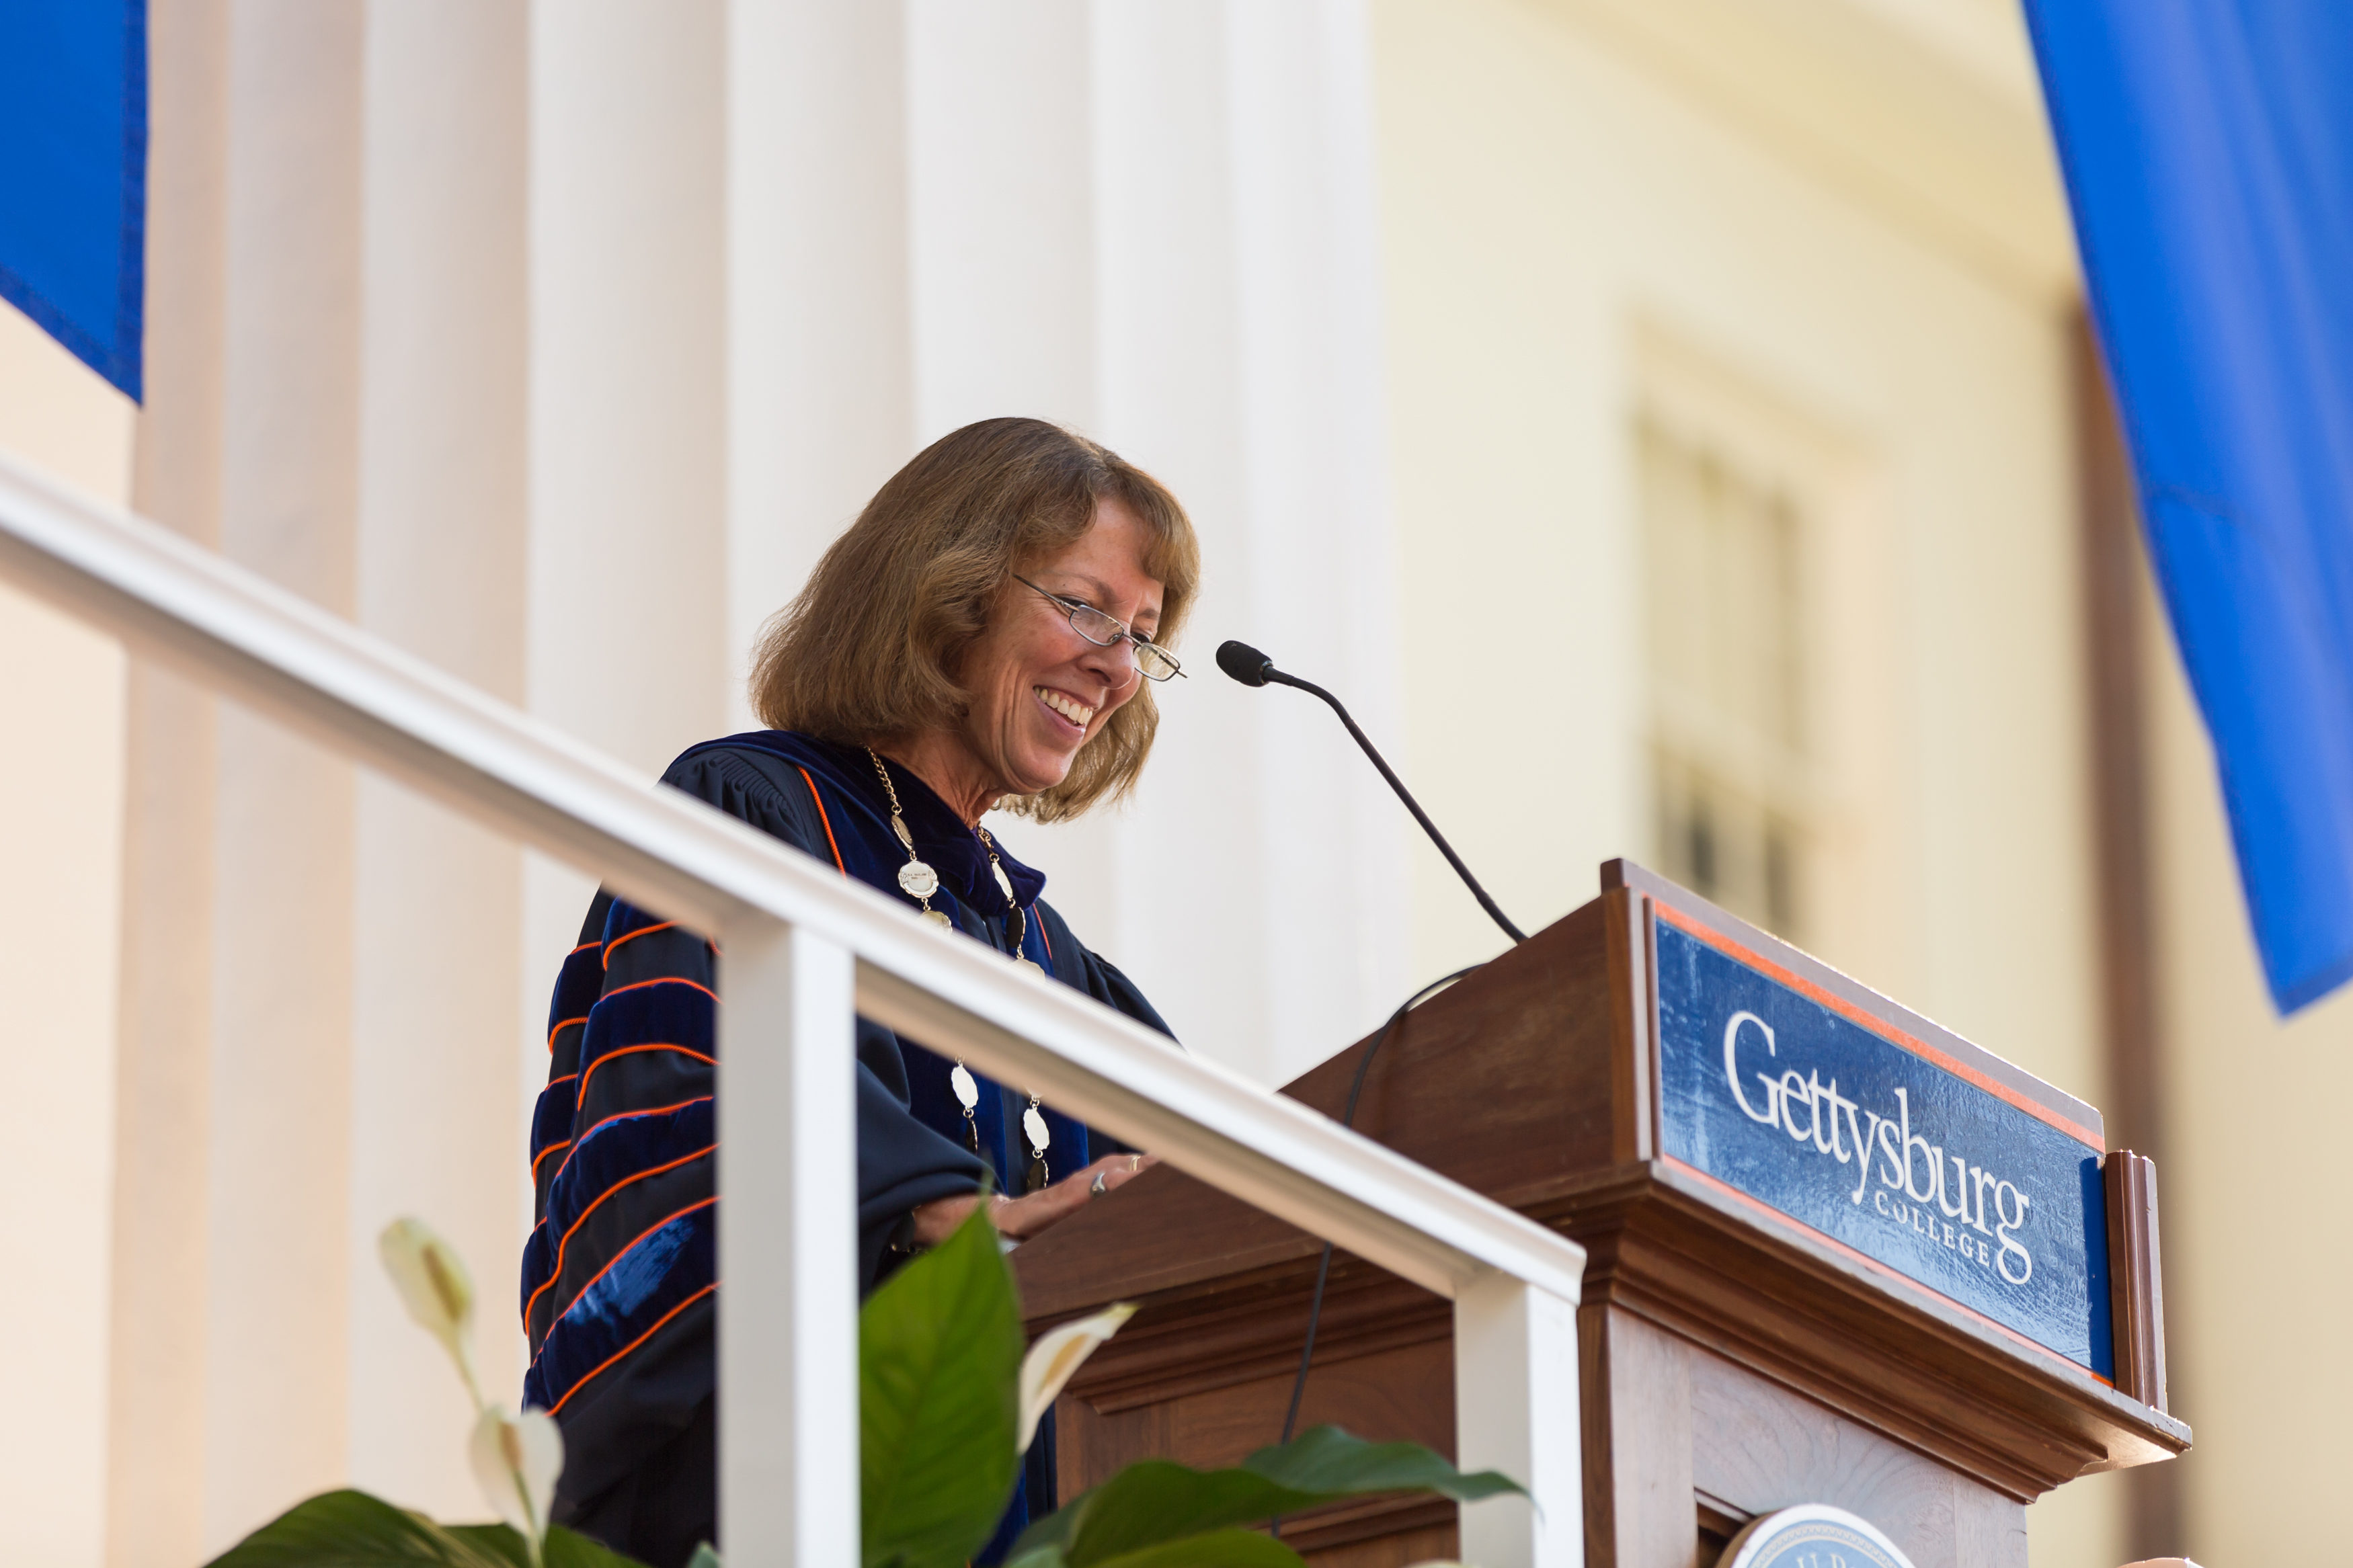 President Janet Morgan Riggs announced her plans last month to retire at the end of the 2018-19 academic year (Photo courtesy of Gettysburg College)